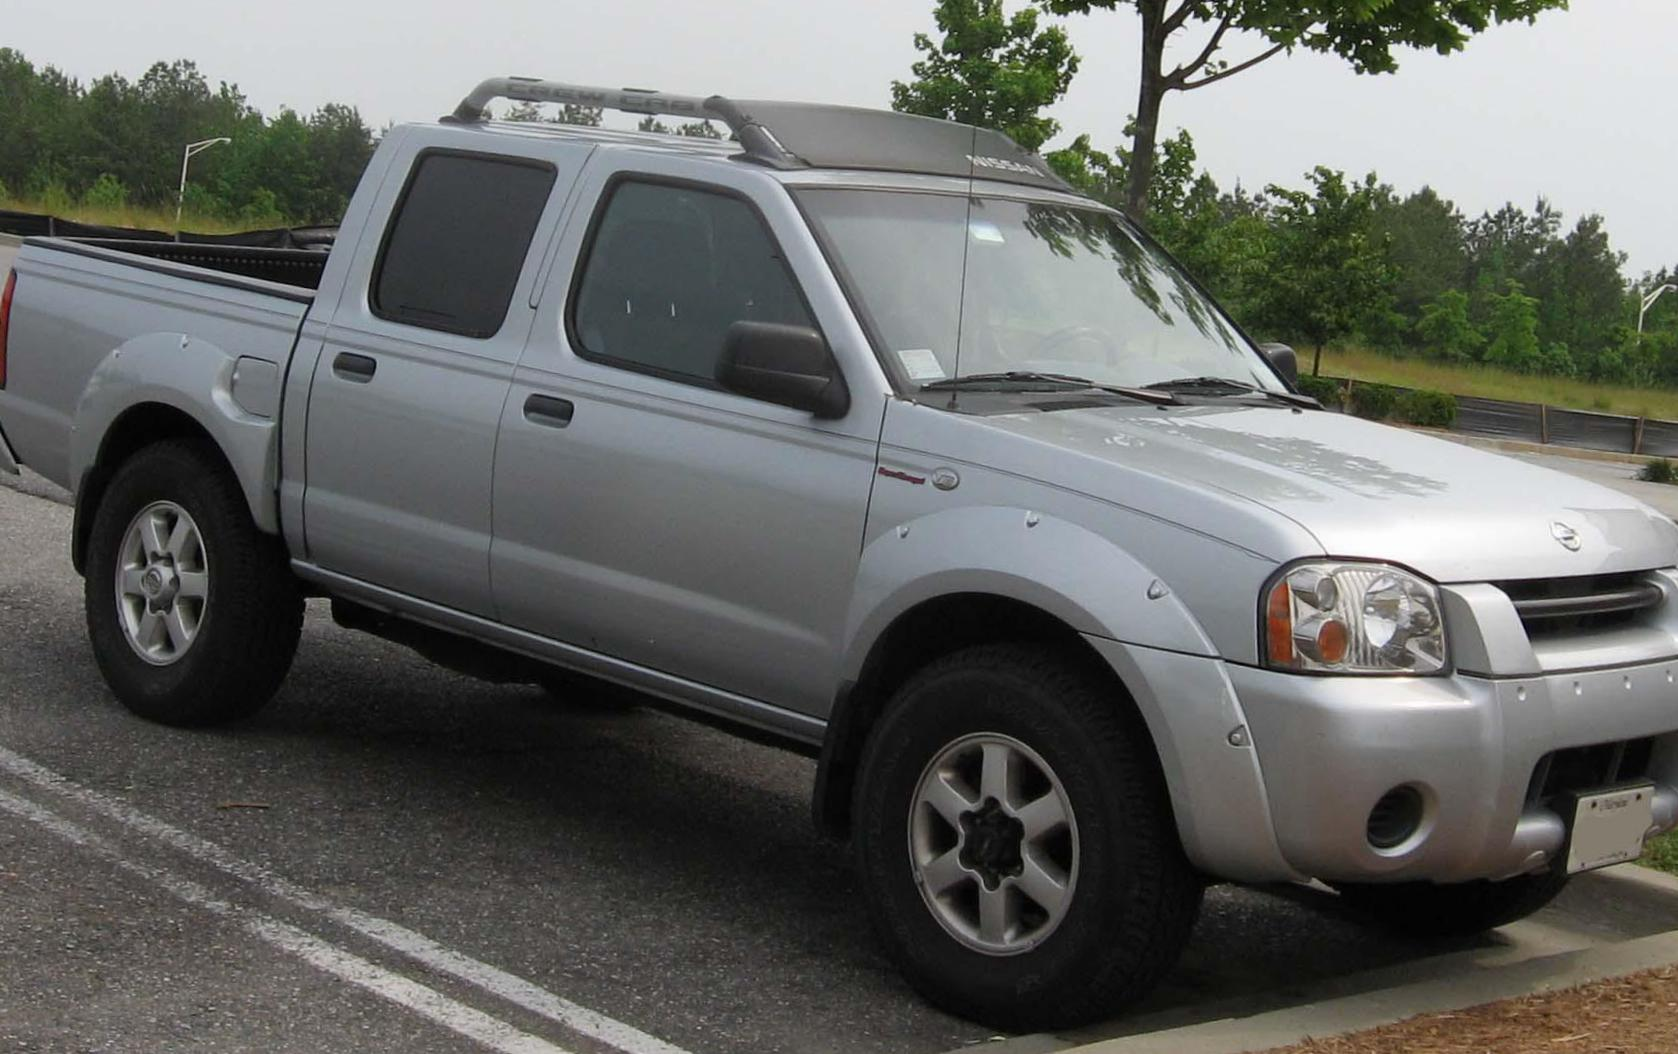 NP300 King Cab Nissan lease 2009